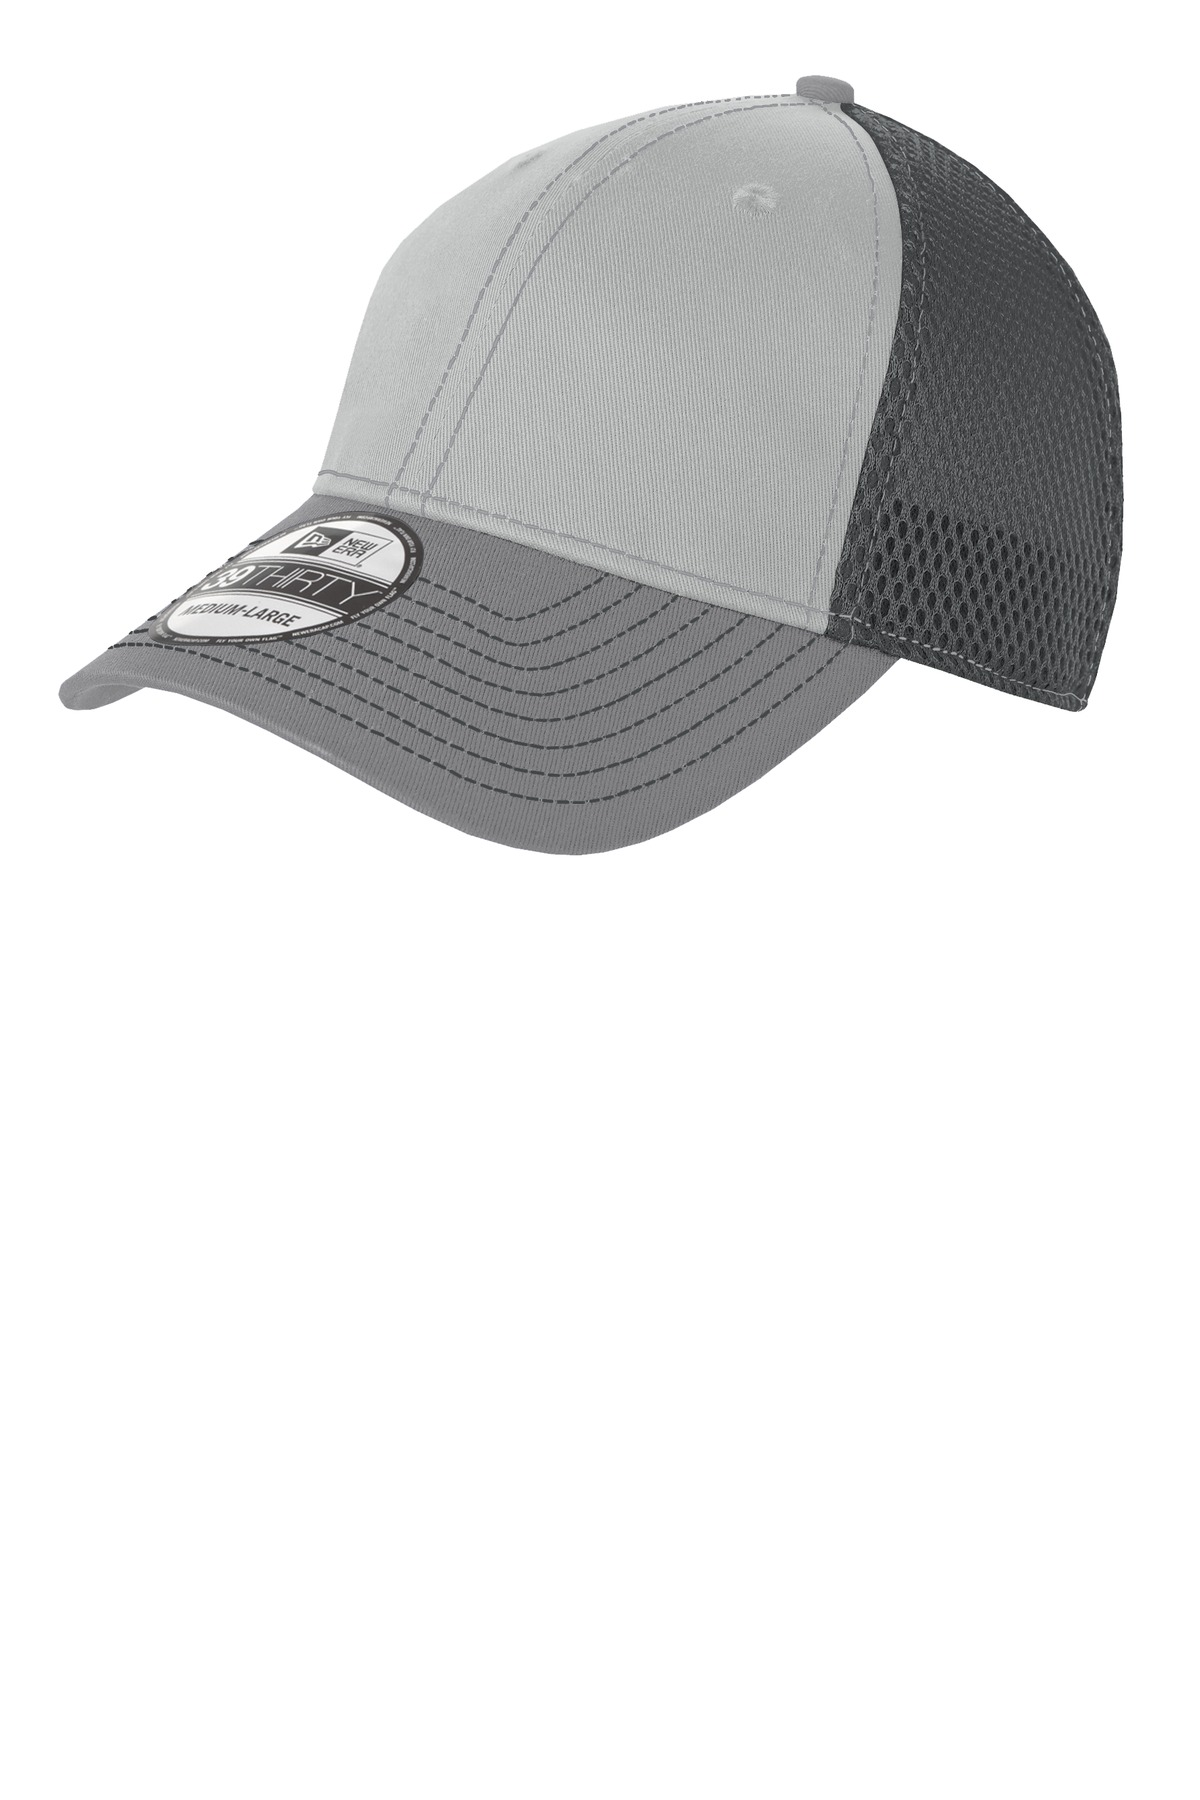 New Era ®  - Stretch Mesh Contrast Stitch Cap. NE1120 - Grey/ Steel/ Graphite